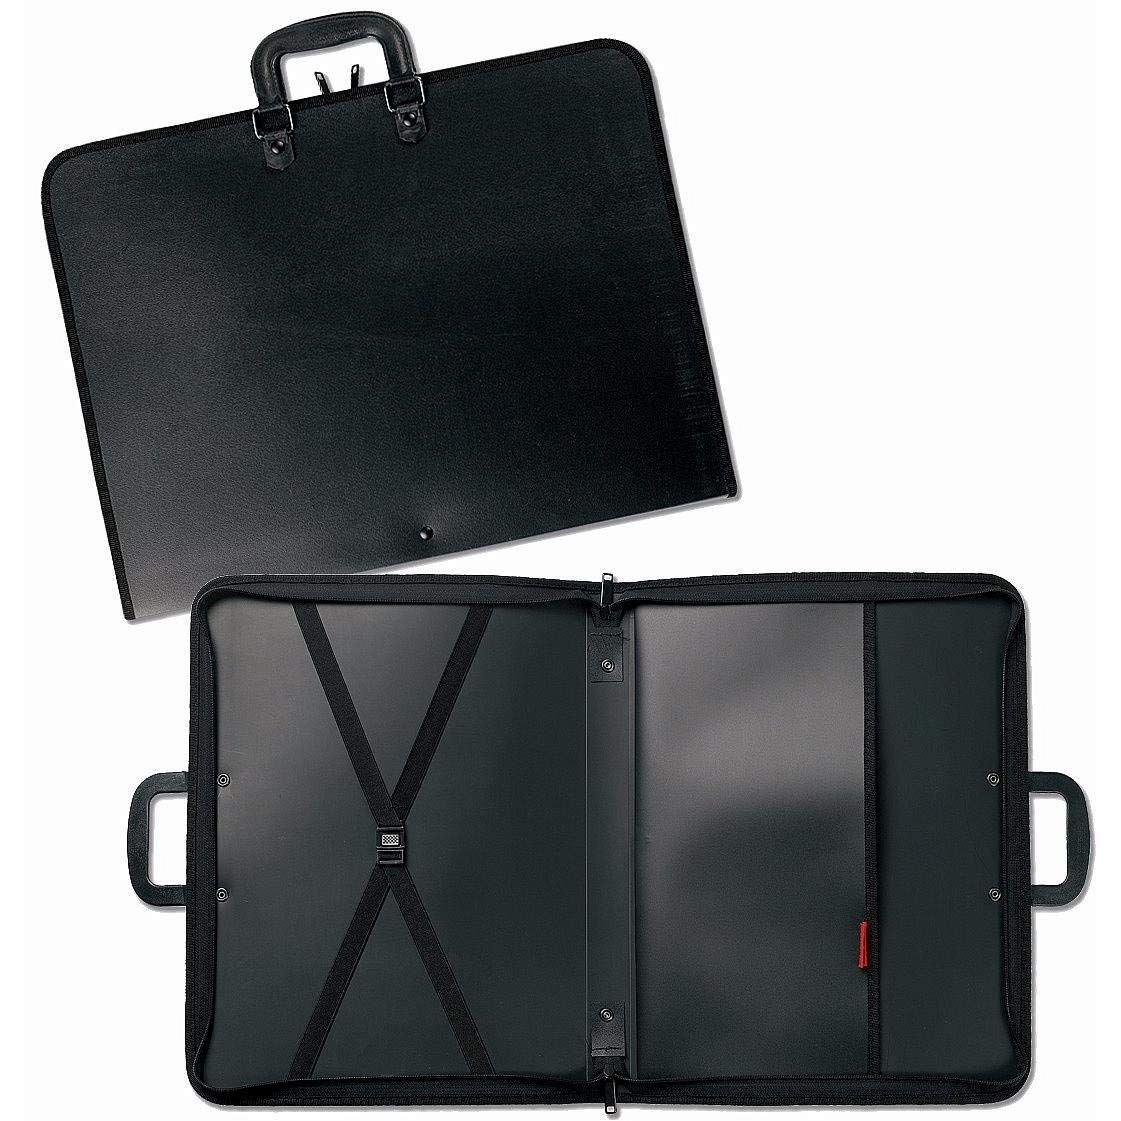 Black Lightweight Cover with Inside Pockets and Straps for Organization 22 X 17 X 3 inches Prat Start 1 Portfolio Handle for Transport S1-1222